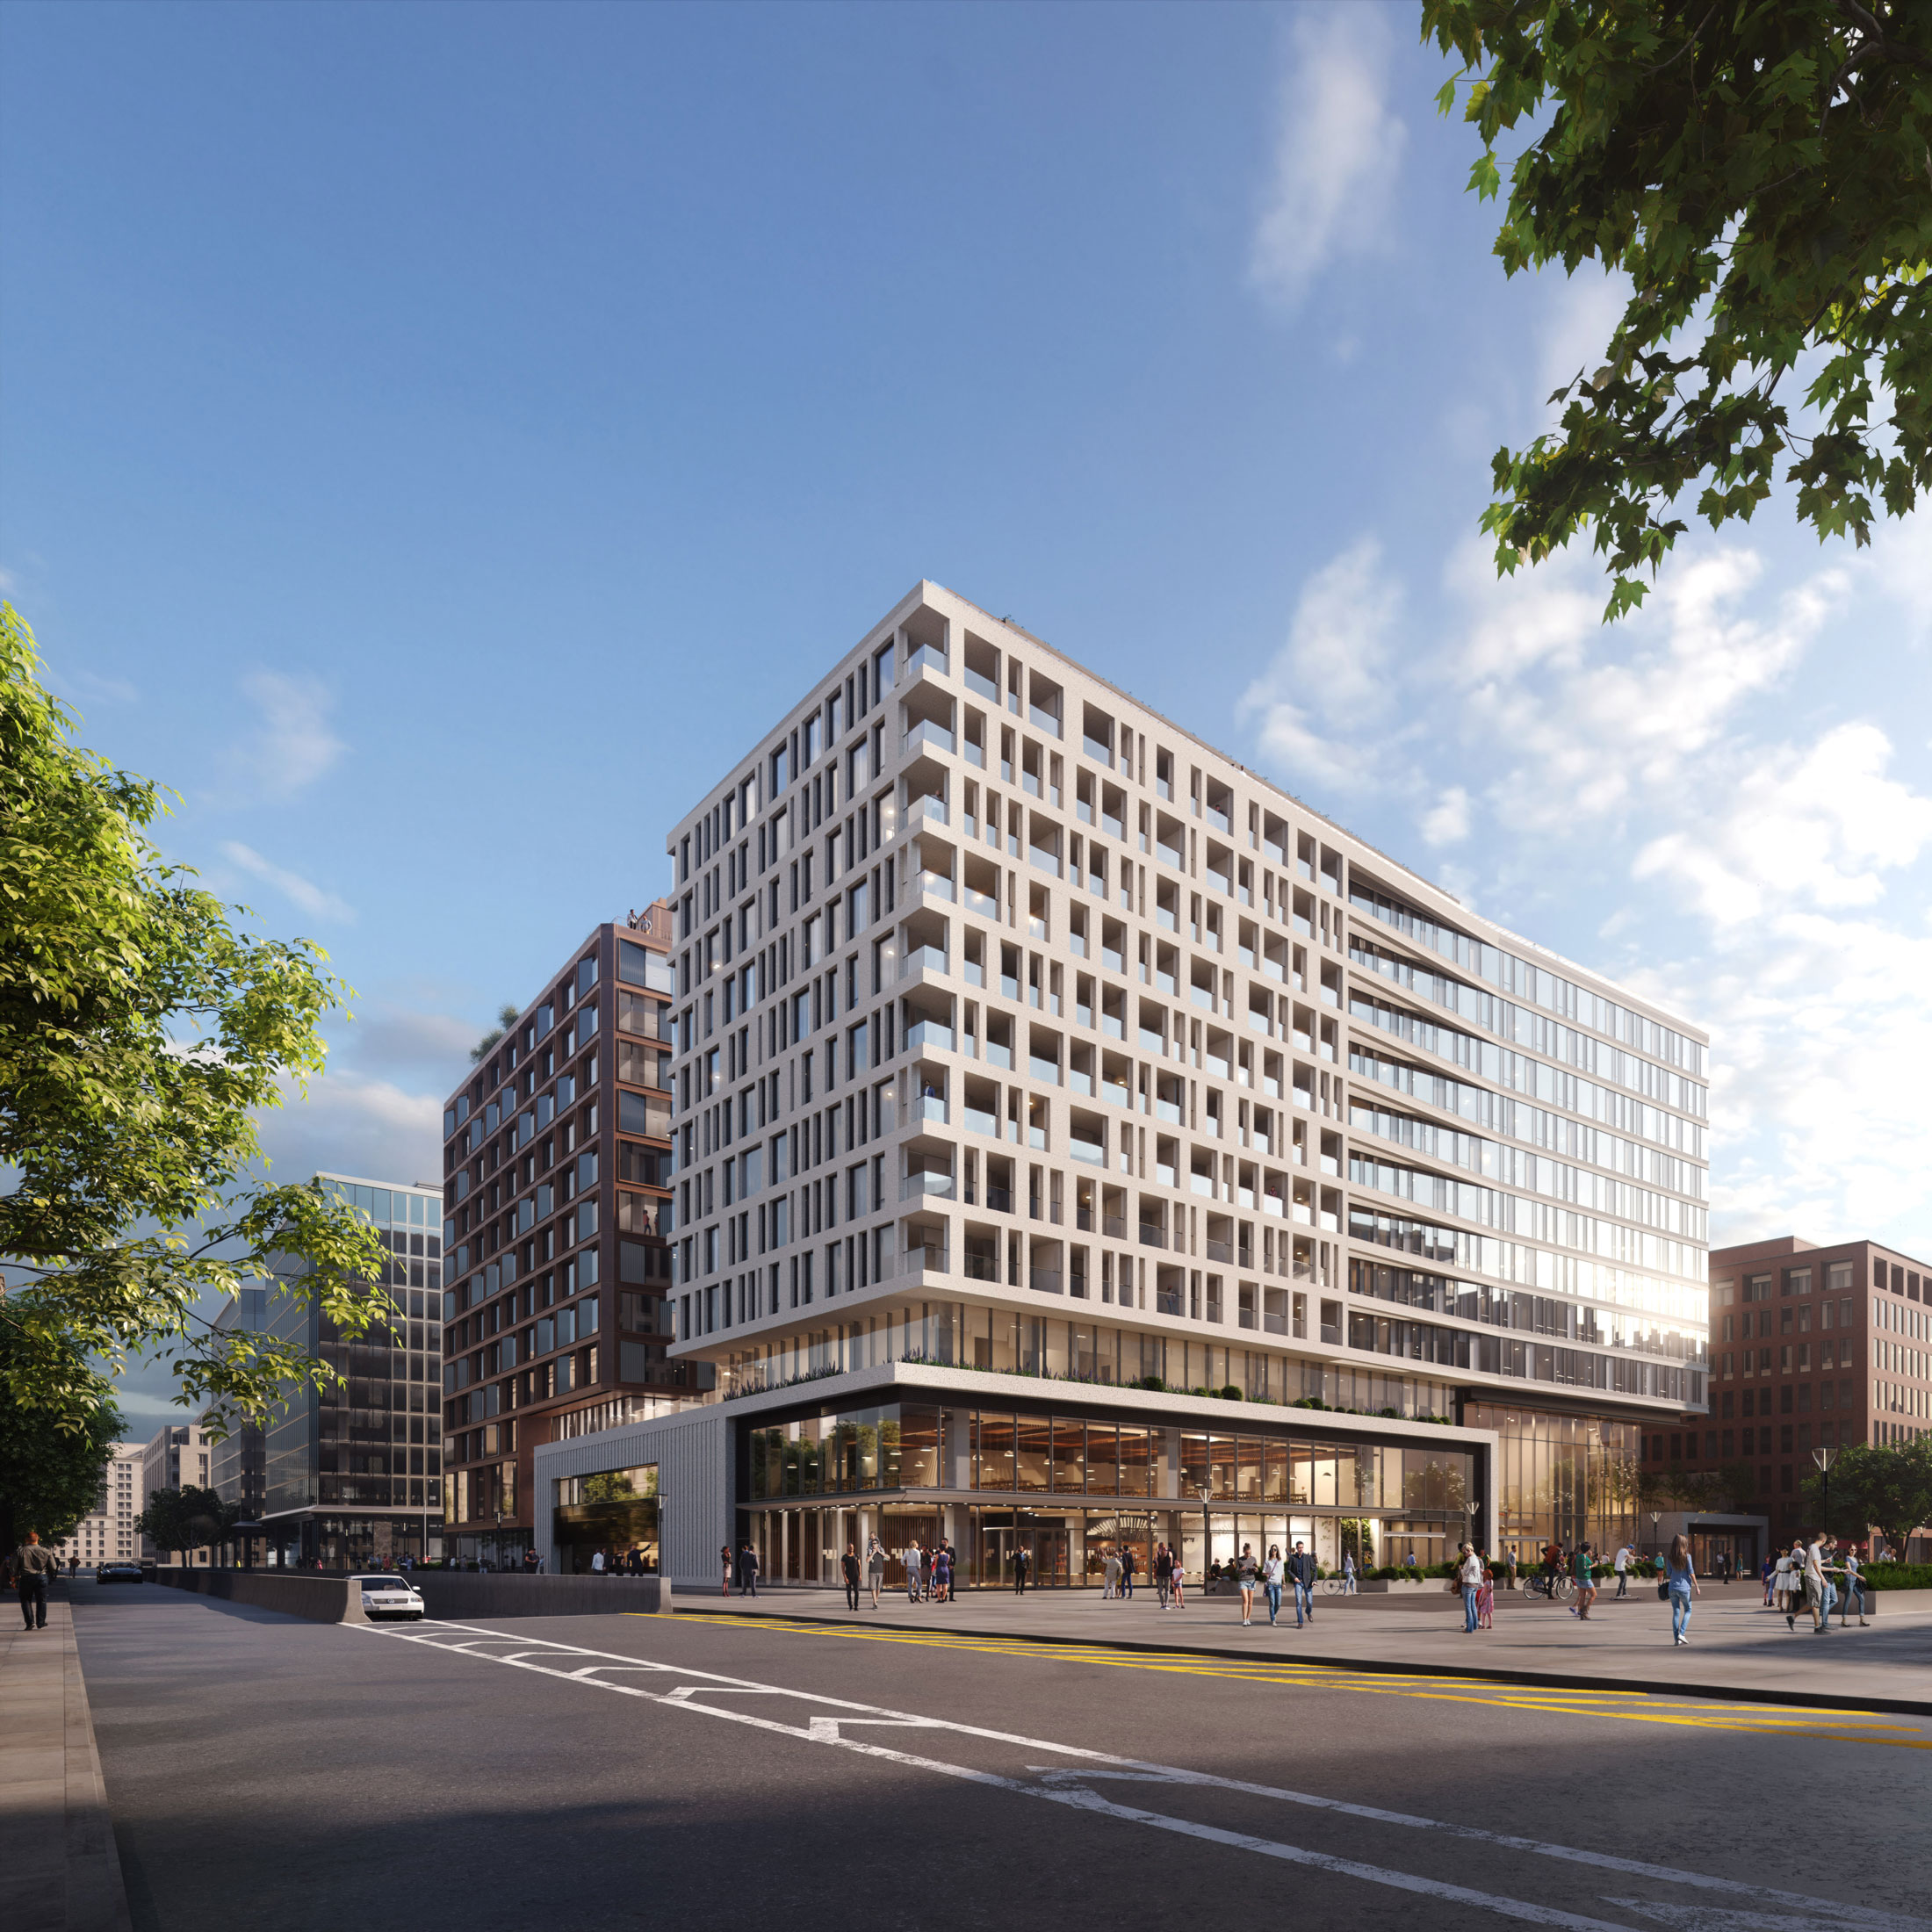 Architectural Rendering of the exterior of the Center Block at Capitol Crossing project located in Washington, DC